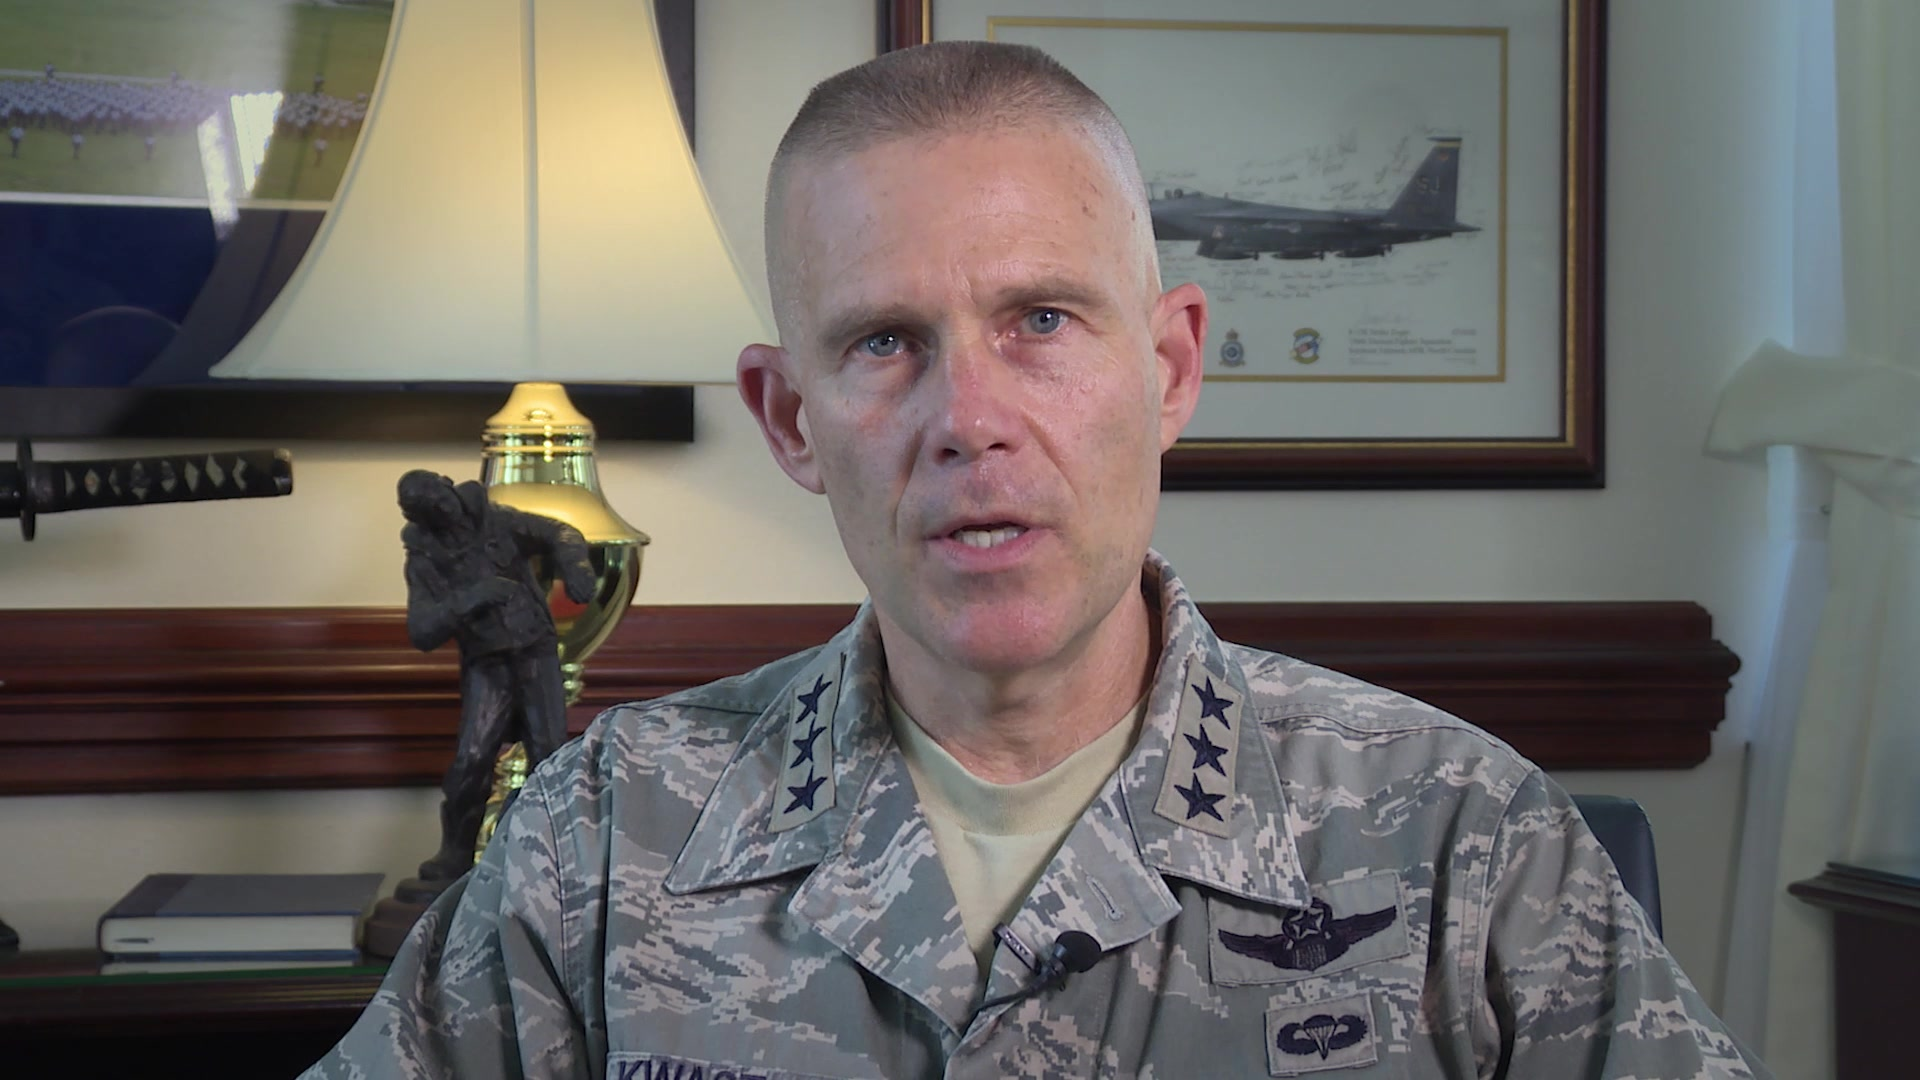 Changing Paradigms... Time is no longer a constant   Check out the latest Commander's Intent video from Lt. Gen. Steve Kwast where he discusses the importance of communicating with purpose.